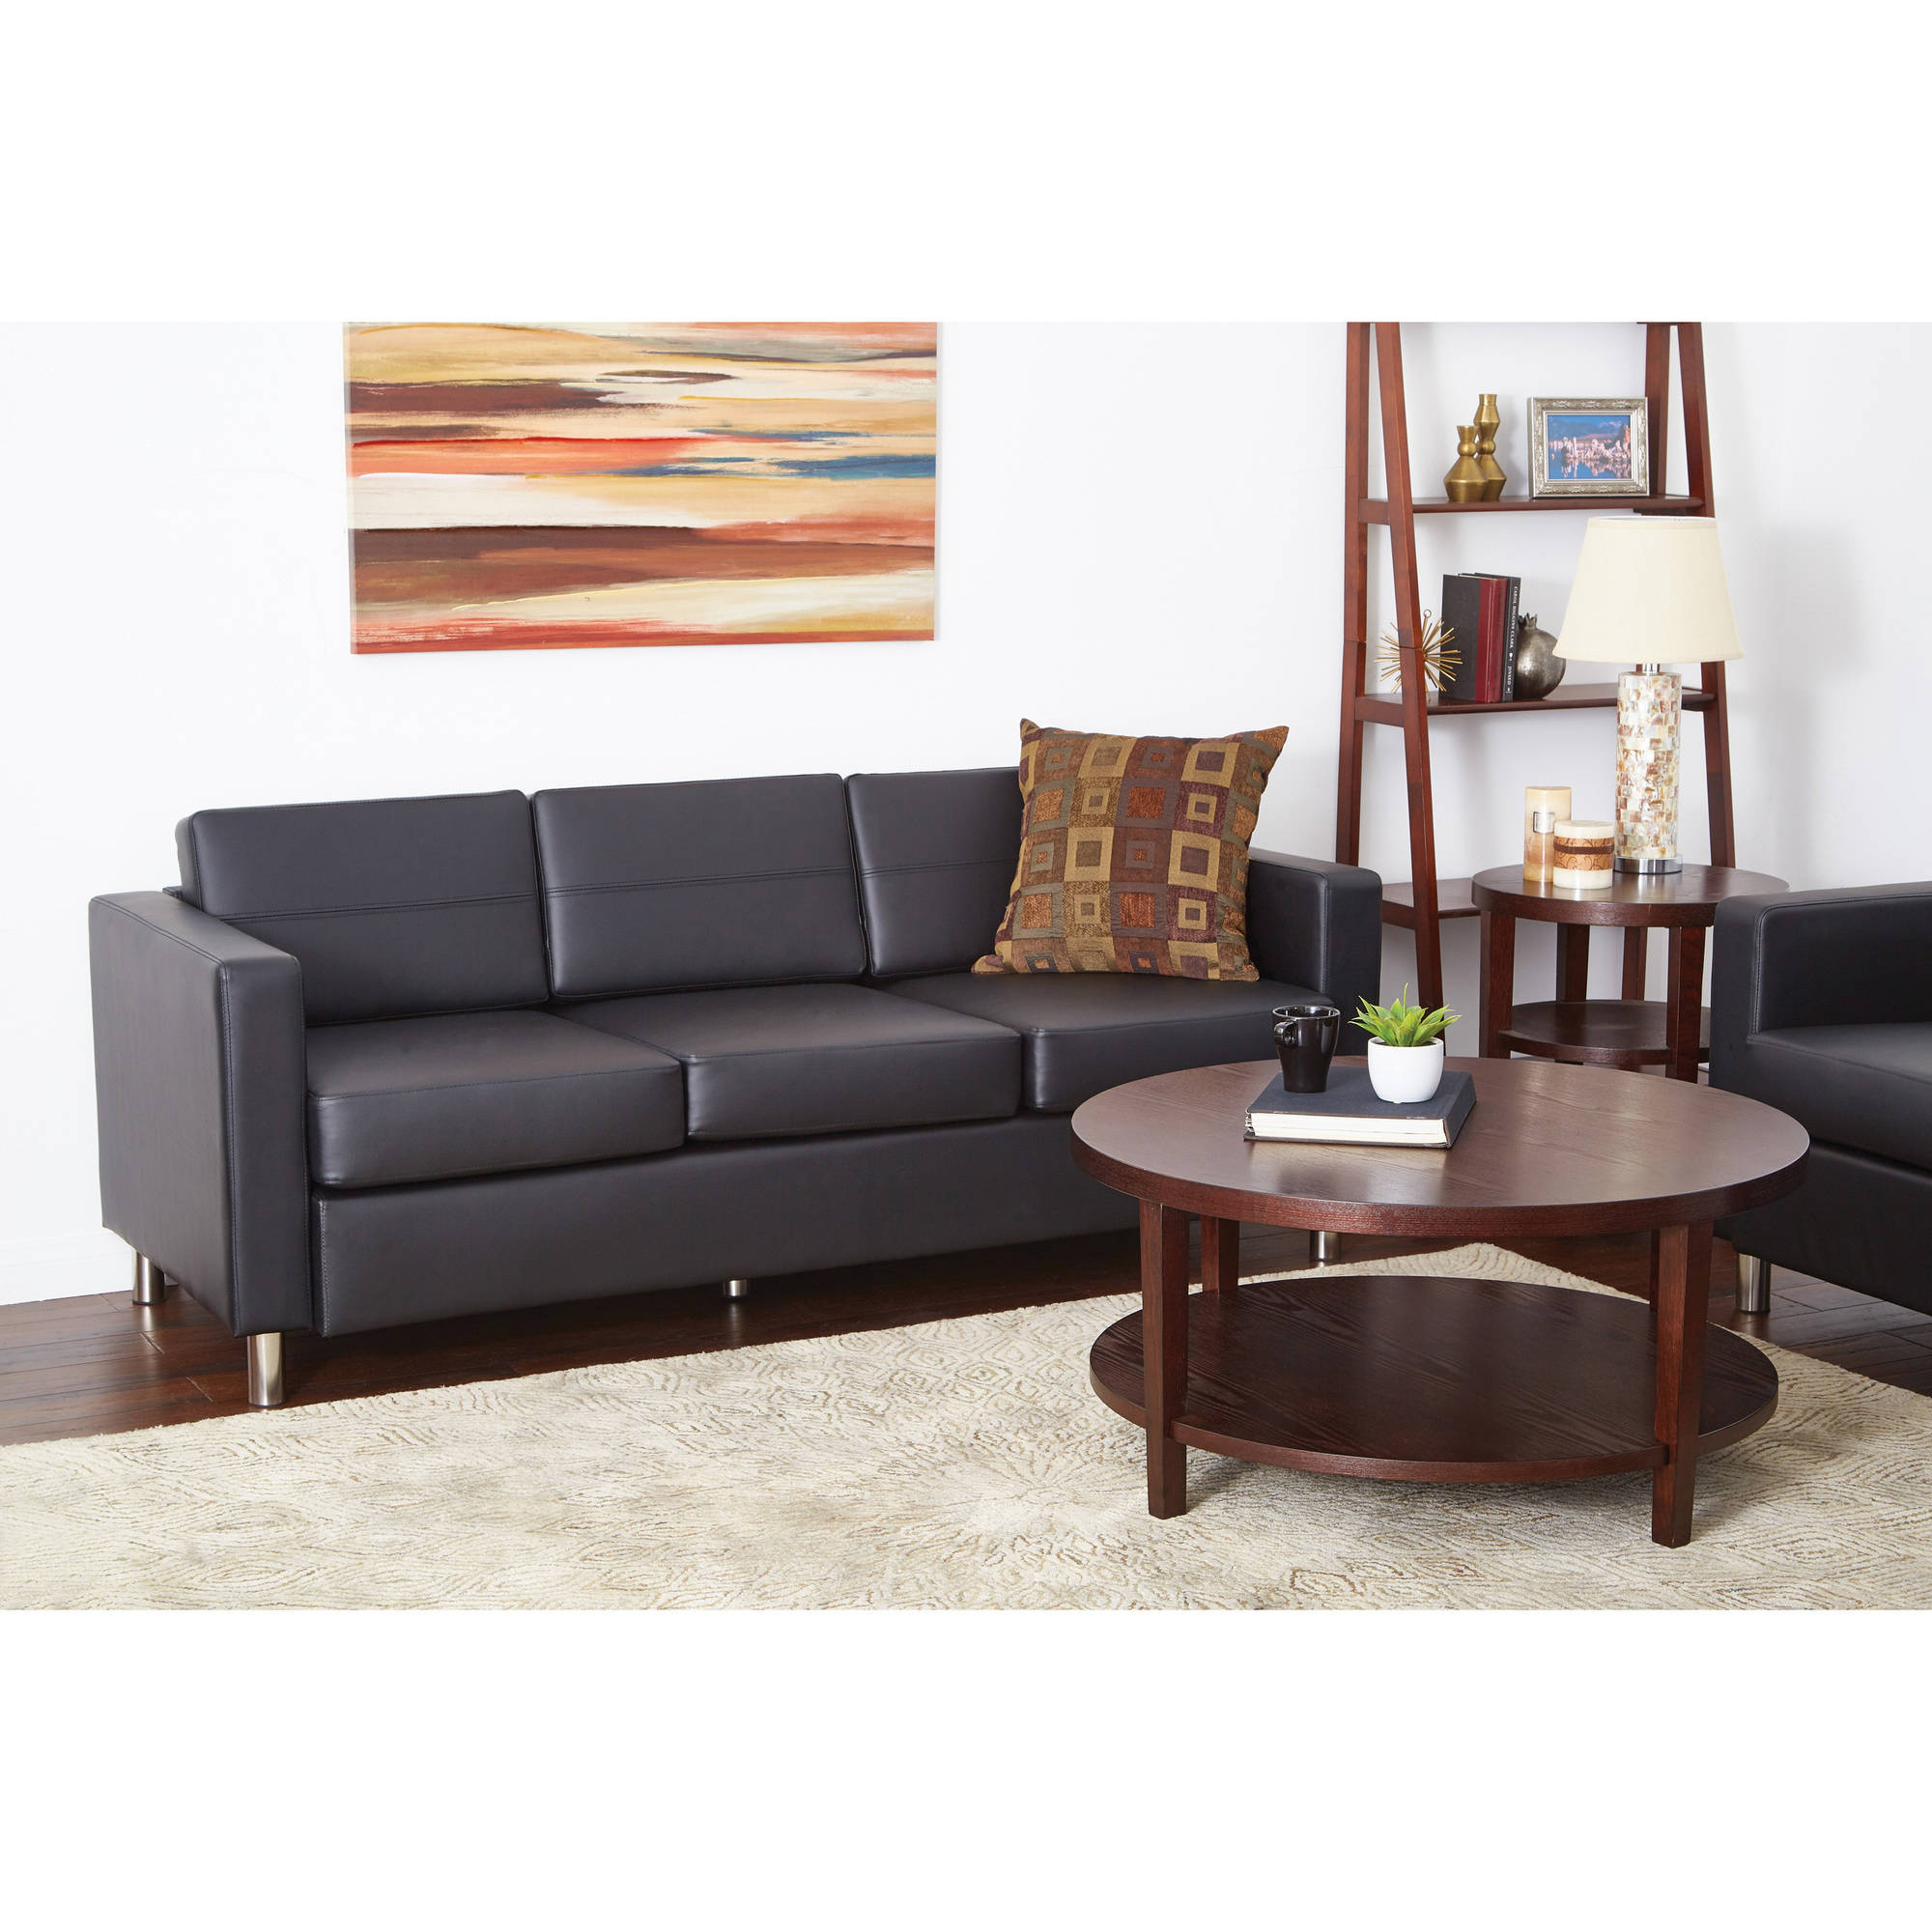 Faux Leather Sofa In A Box Pacific Faux Leather Sofa Couch With Box Spring Seats Black